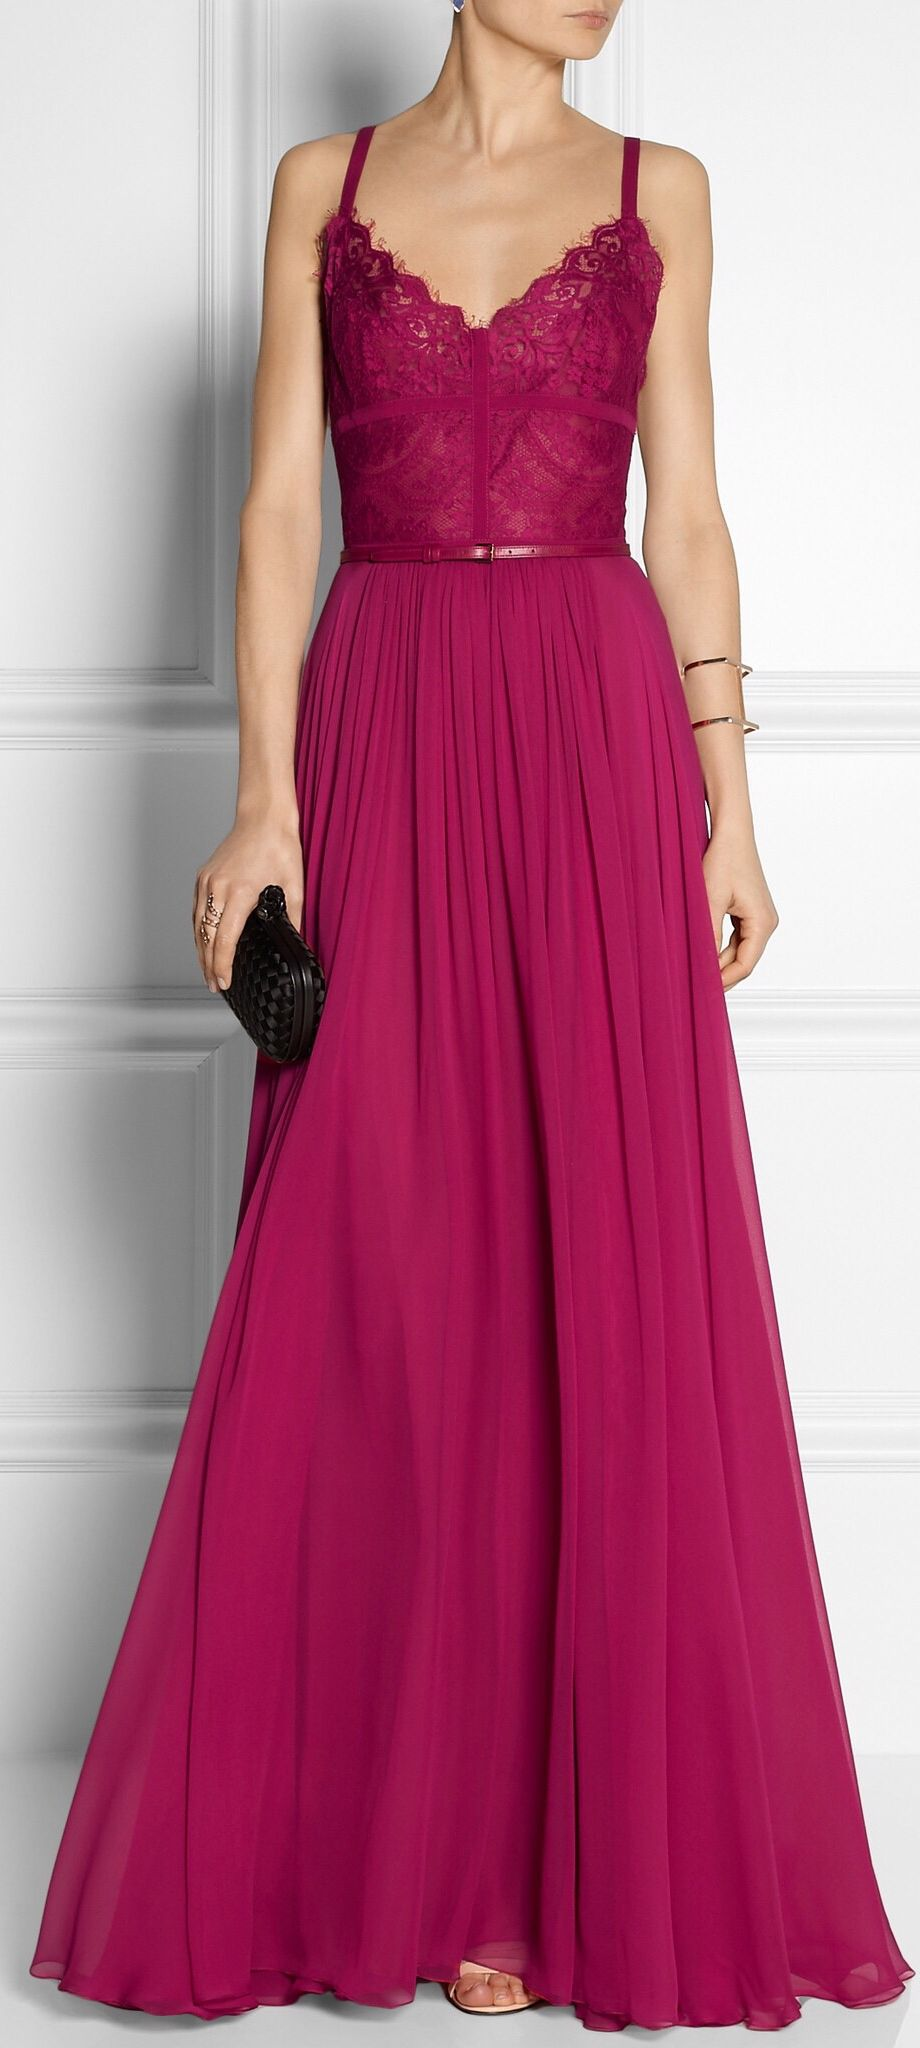 Evening dress dresses dresses and more dresses pinterest dress